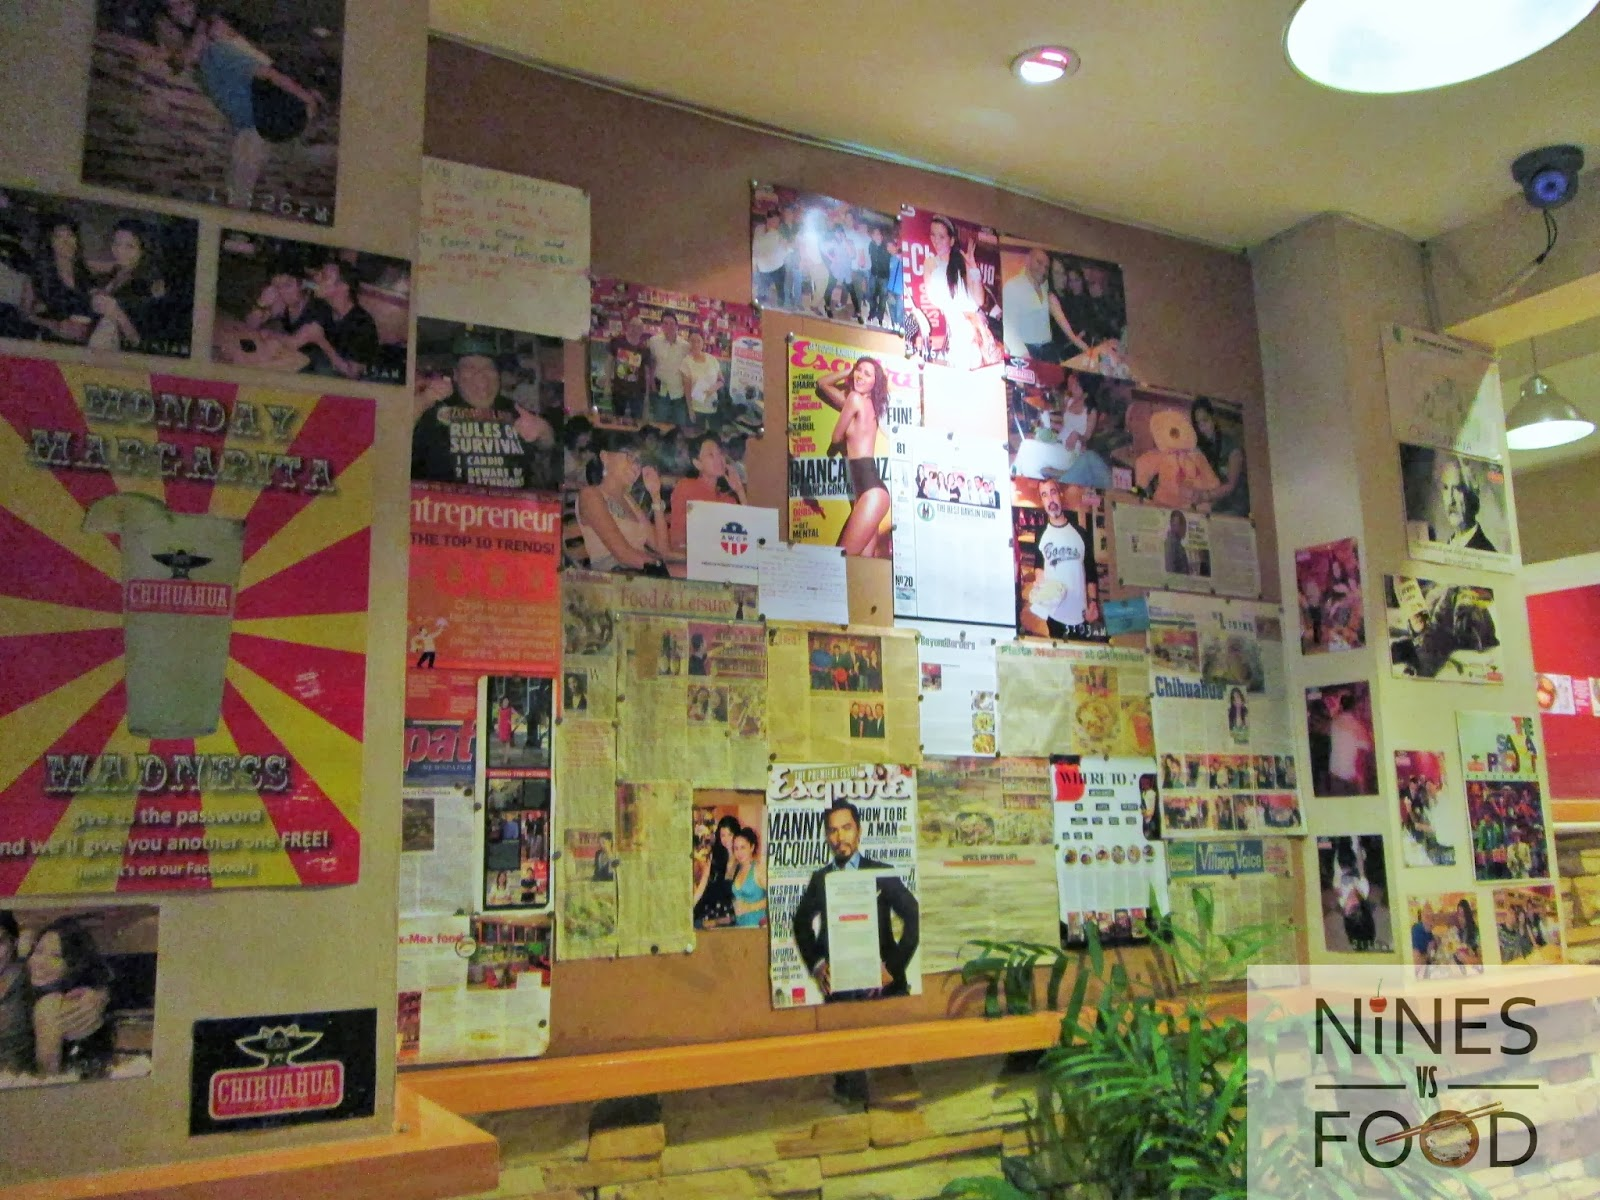 Nines vs. Food - Chihuahua Mexican Grill and Margarita Bar Makati Avenue-1.jpg